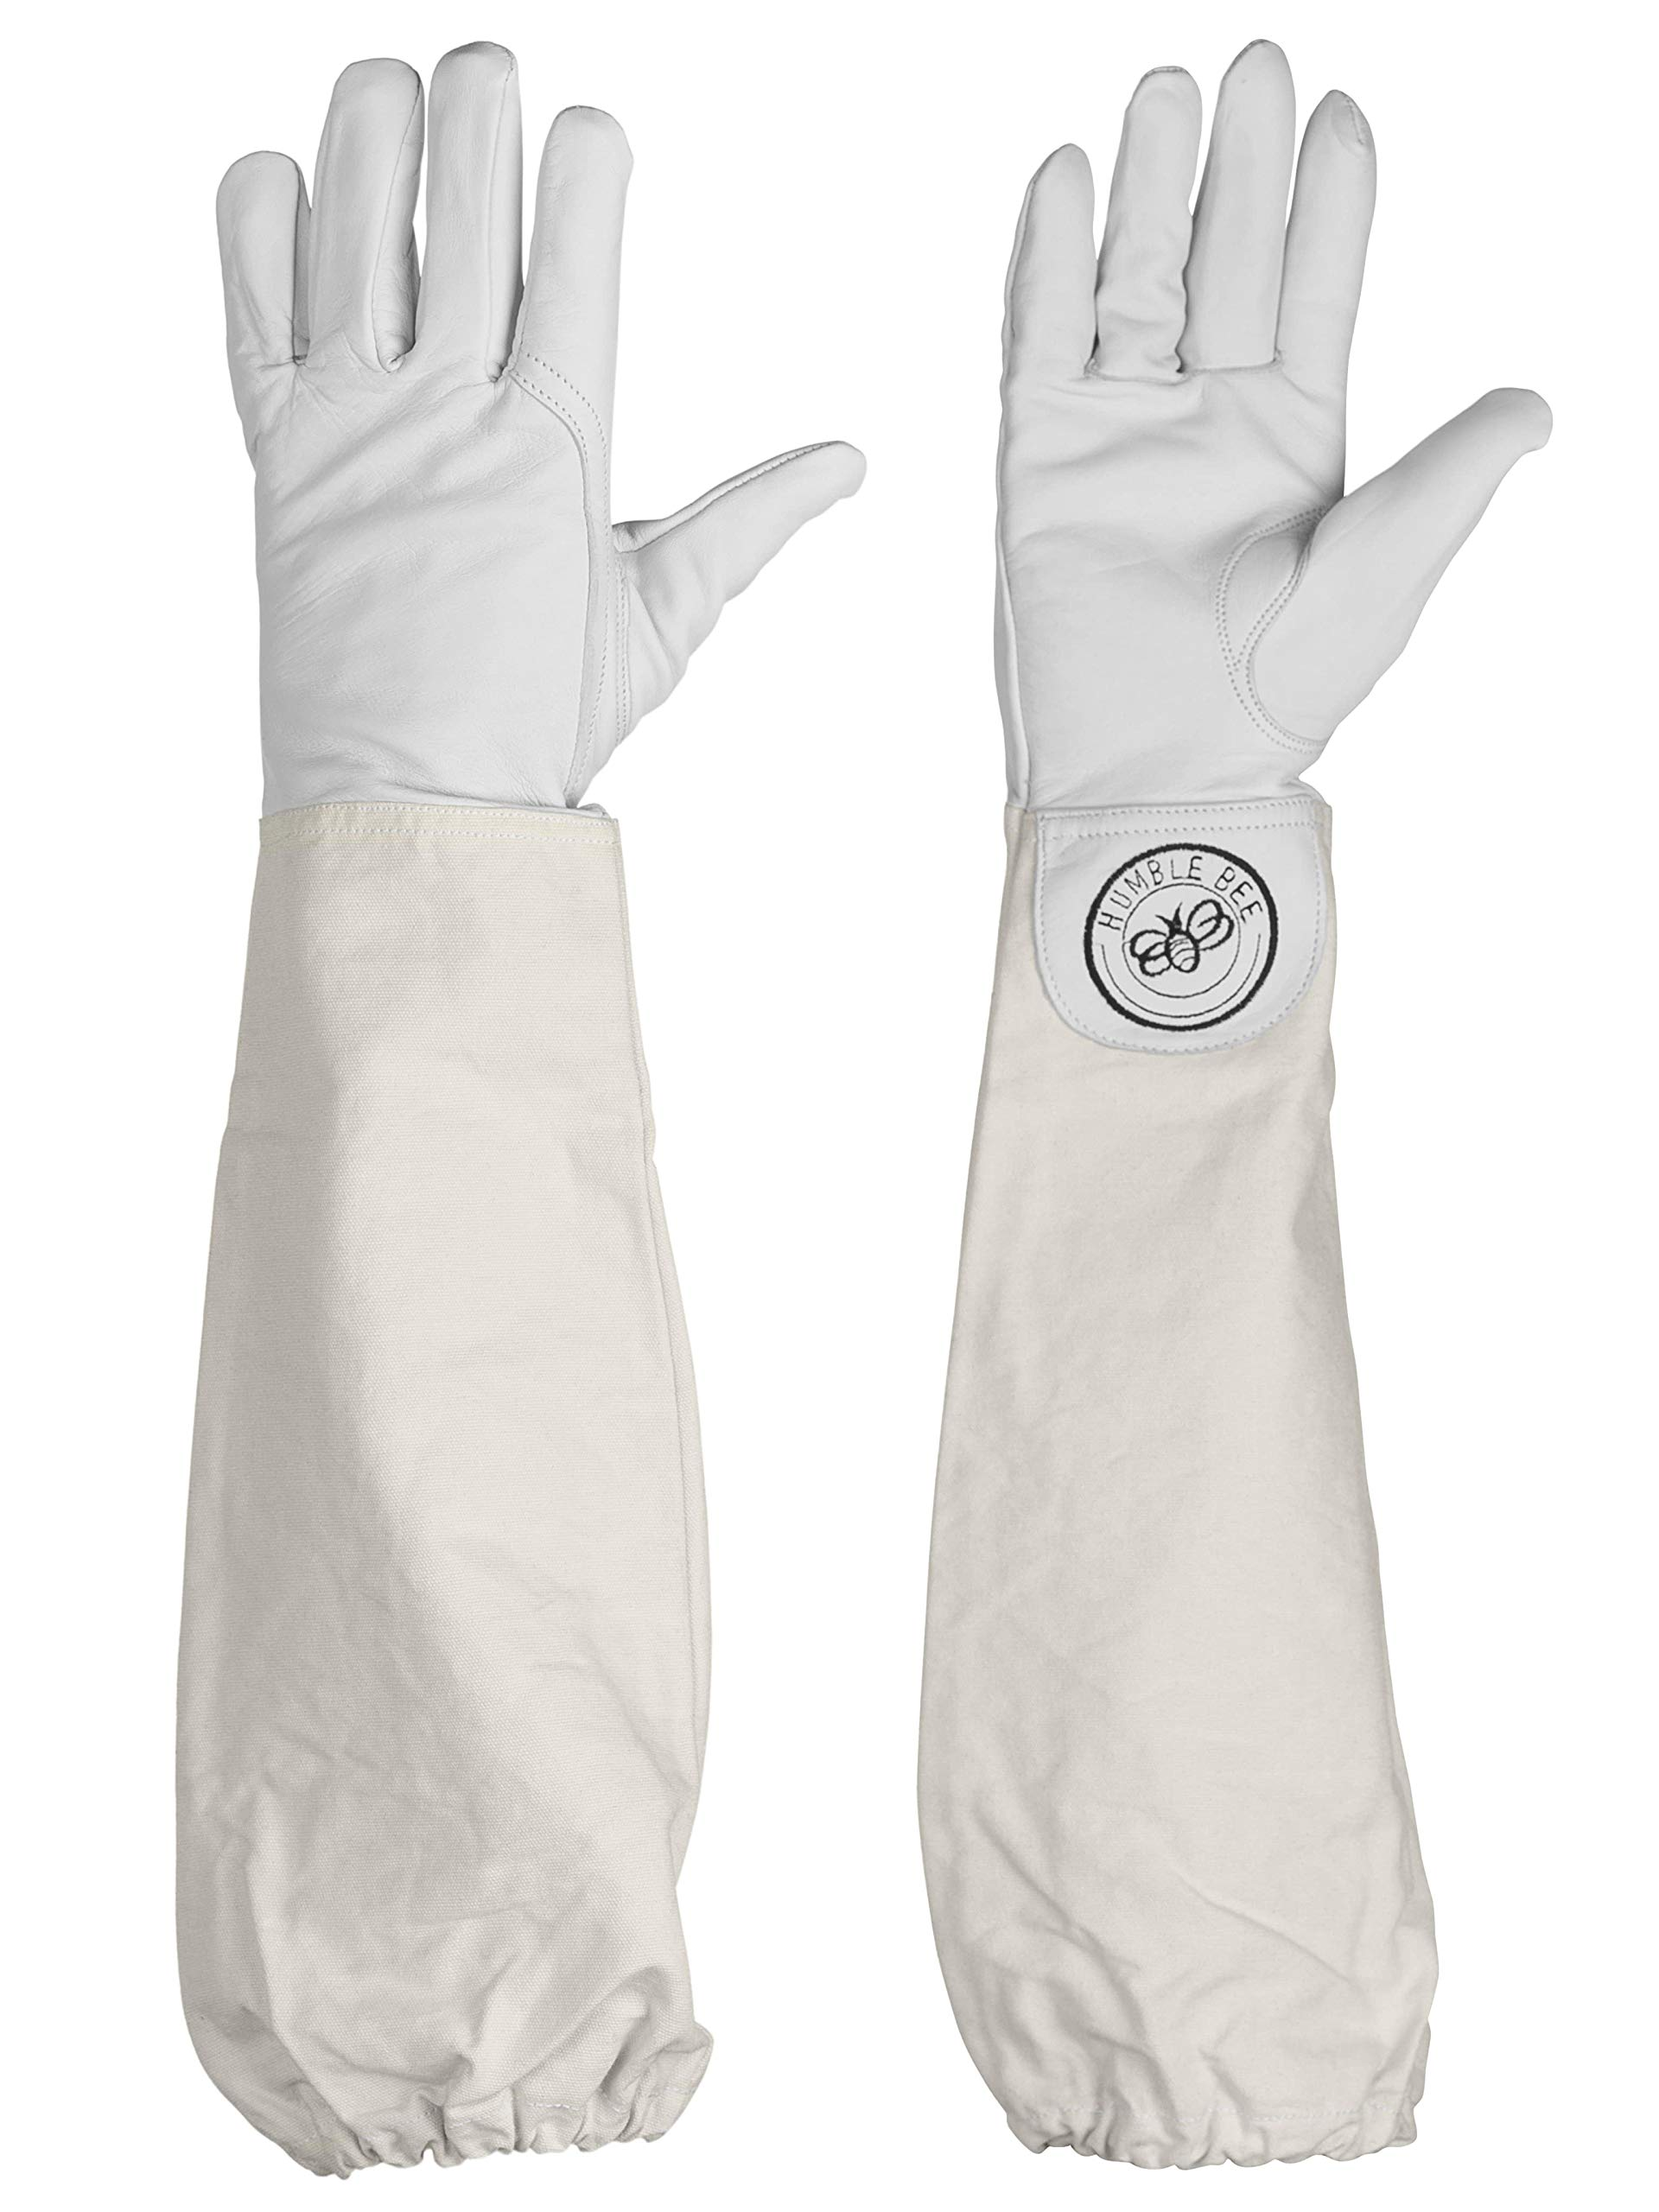 Humble Bee 110 Goatskin Beekeeping Gloves with Extended Sleeves by Humble Bee